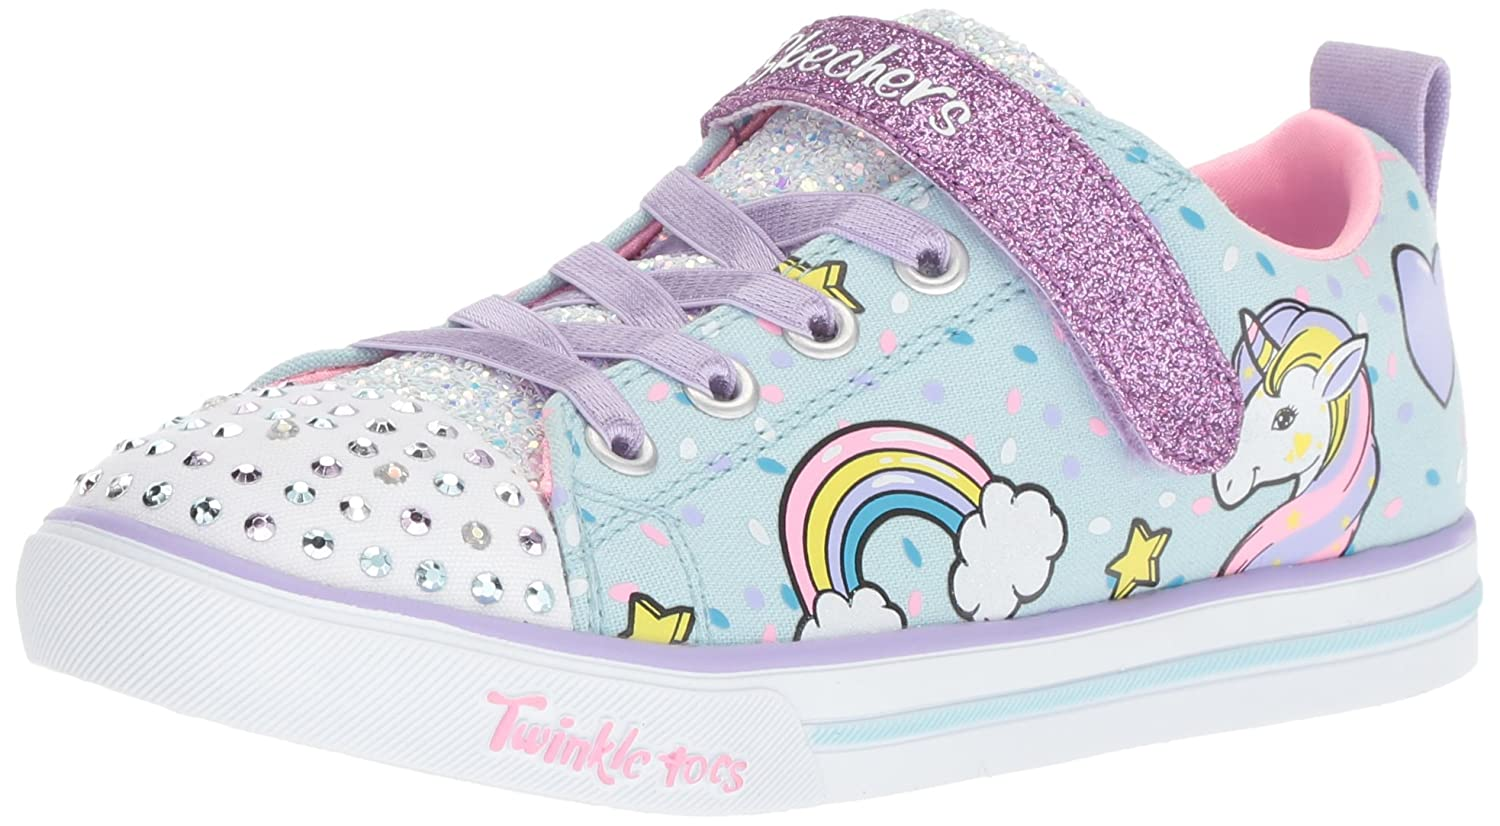 Skechers Kids' Sparkle Lite Unicorn Craze Sneaker